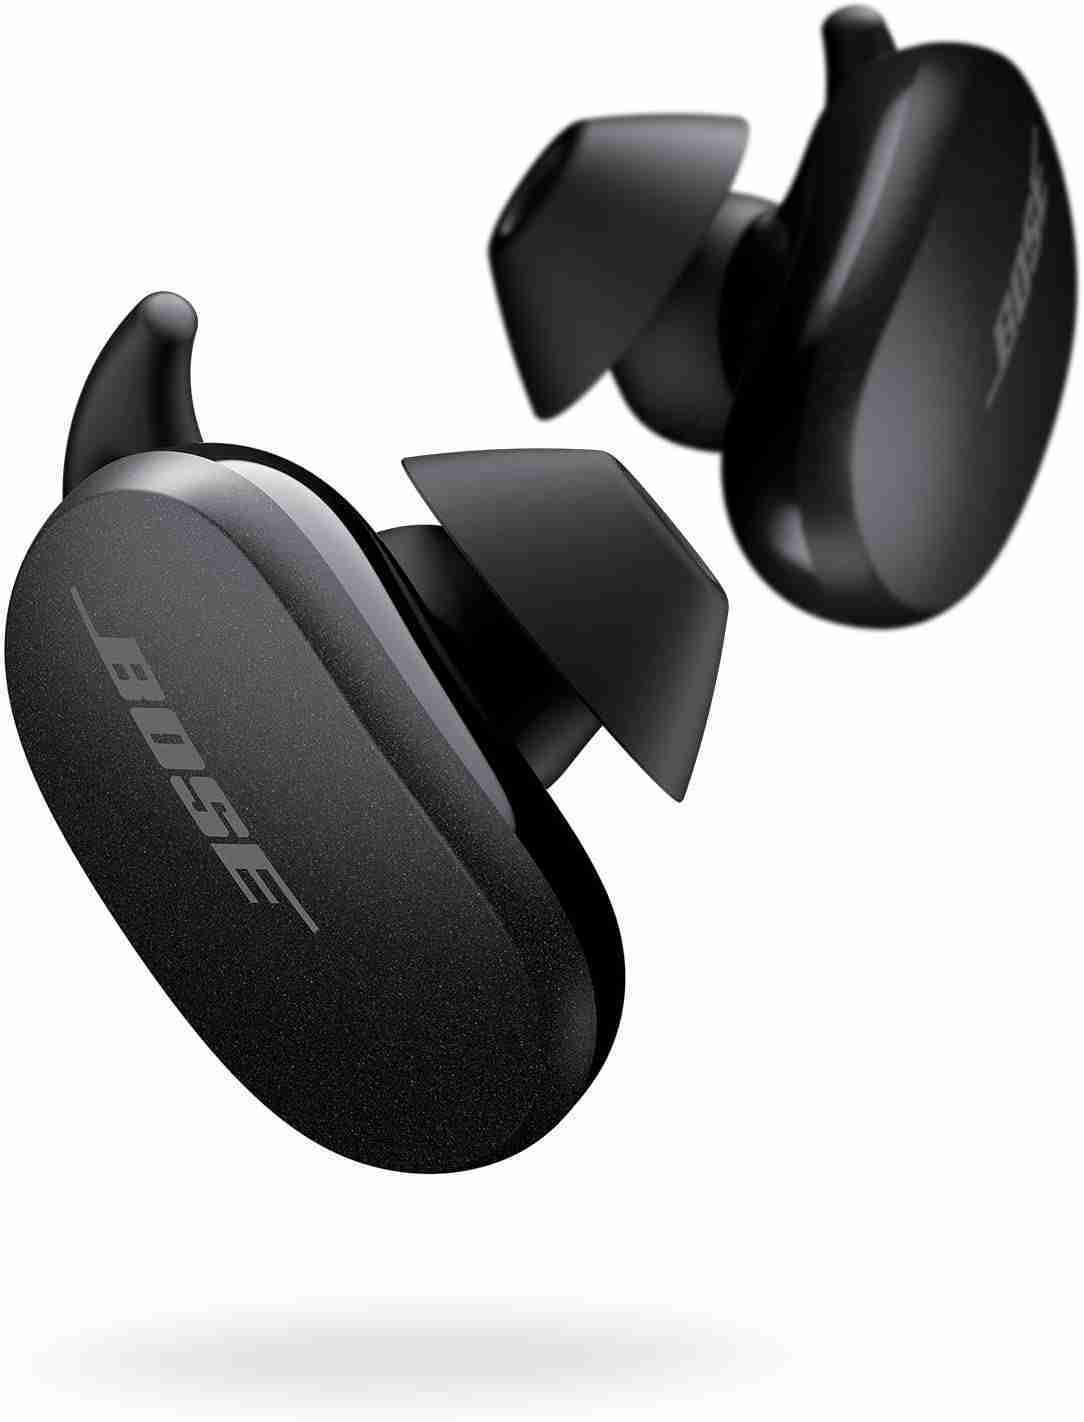 Bose QuietComfort Noise